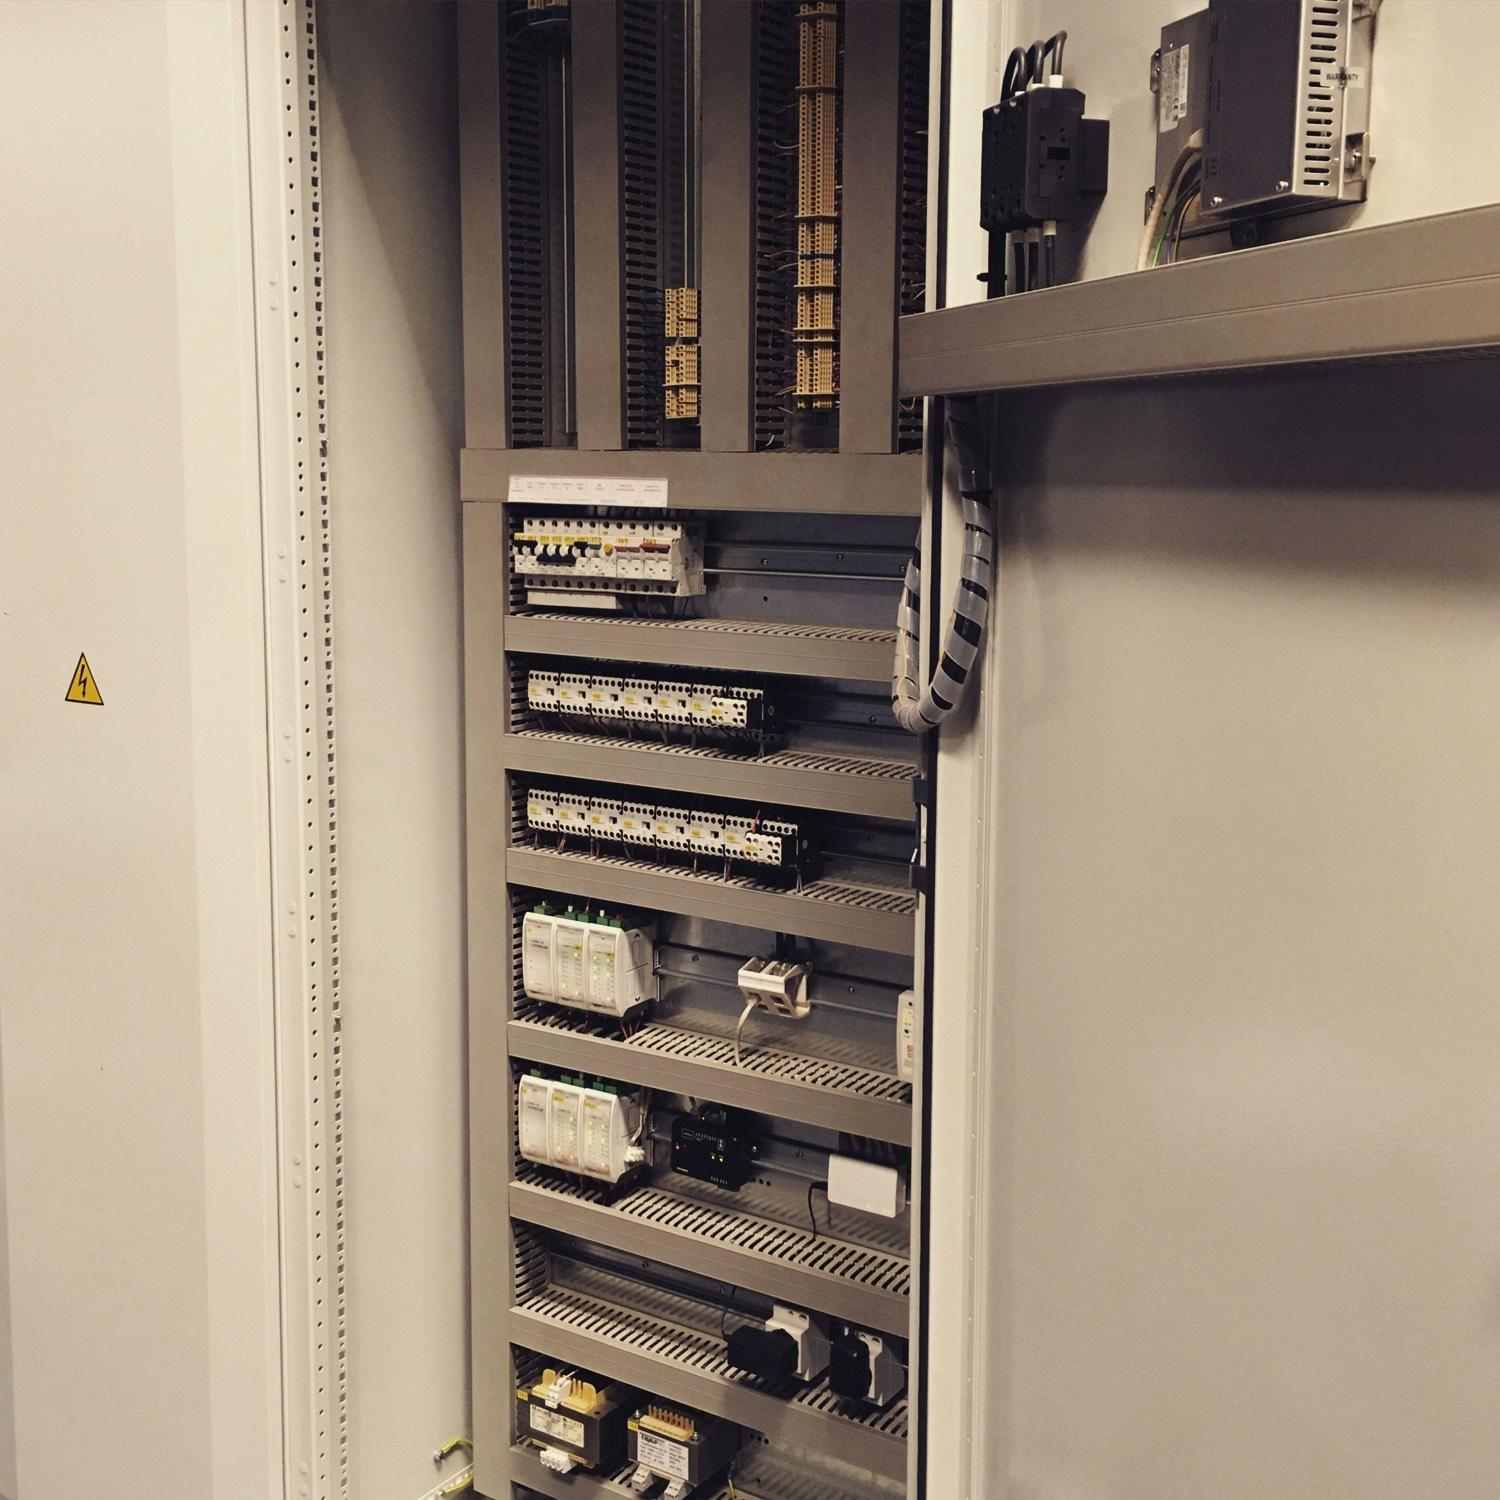 Building automation-Control cabinet